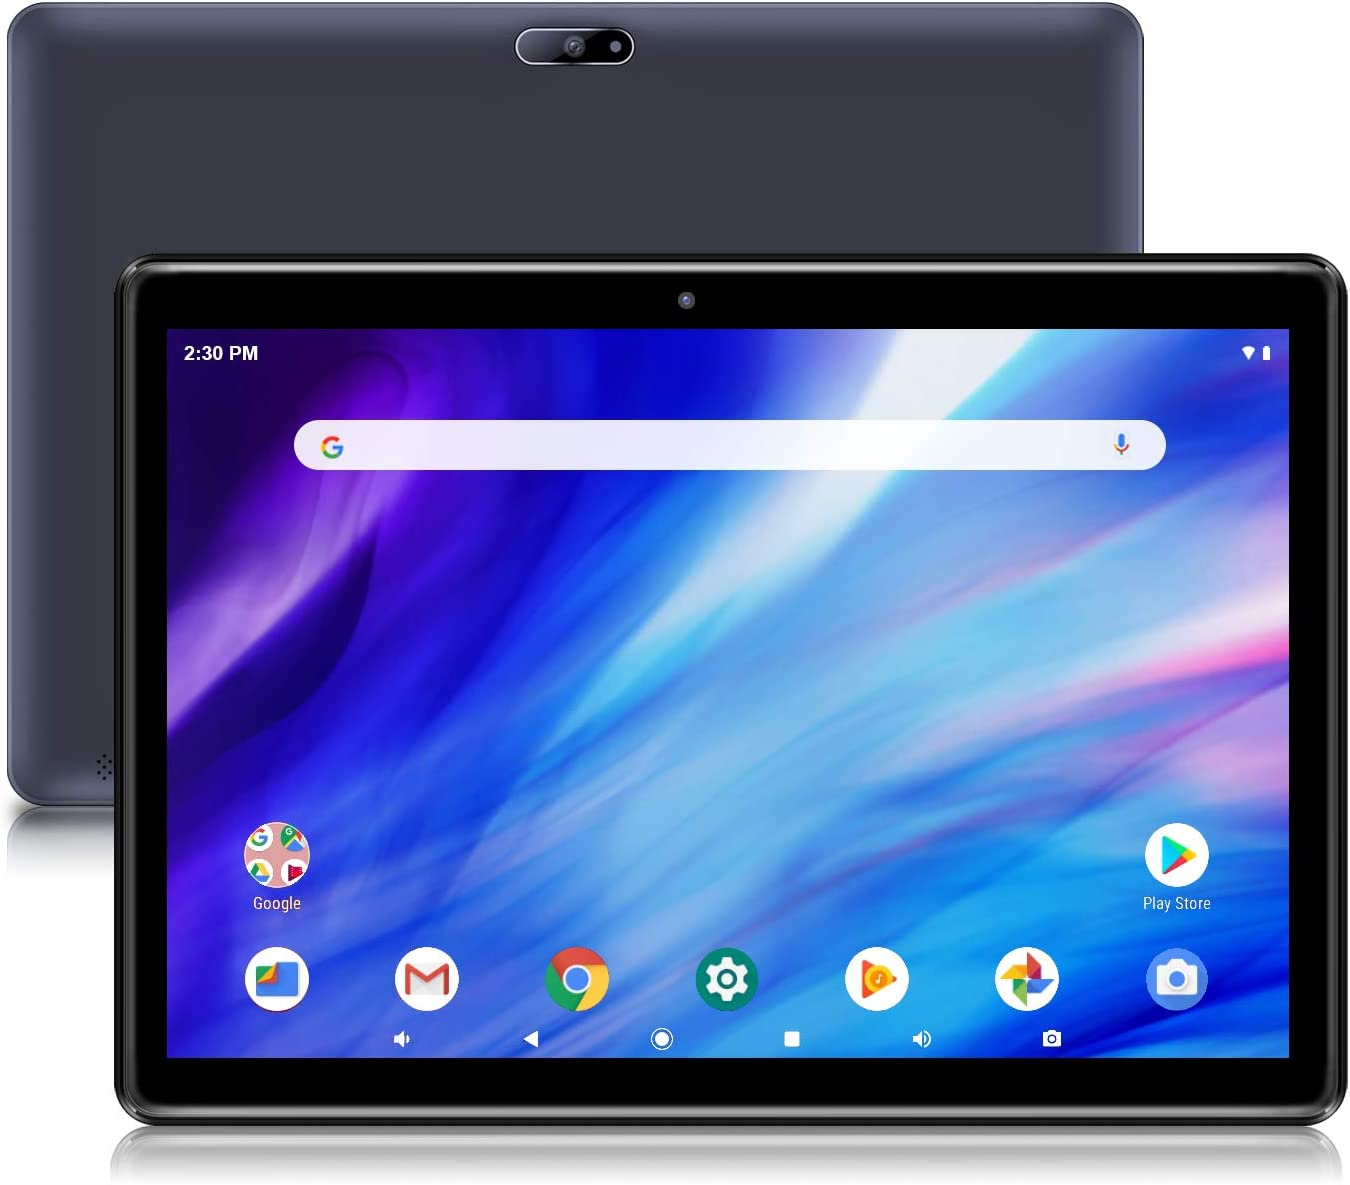 Android Tablet Pritom 10 inch Android 9.0 OS Tablet, 2GB RAM, 32GB ROM, Quad Core Processor, HD IPS Screen, 2.0 Front + 8.0 MP Rear Camera, Wi-Fi, Bluetooth - Tablet PC(Black)